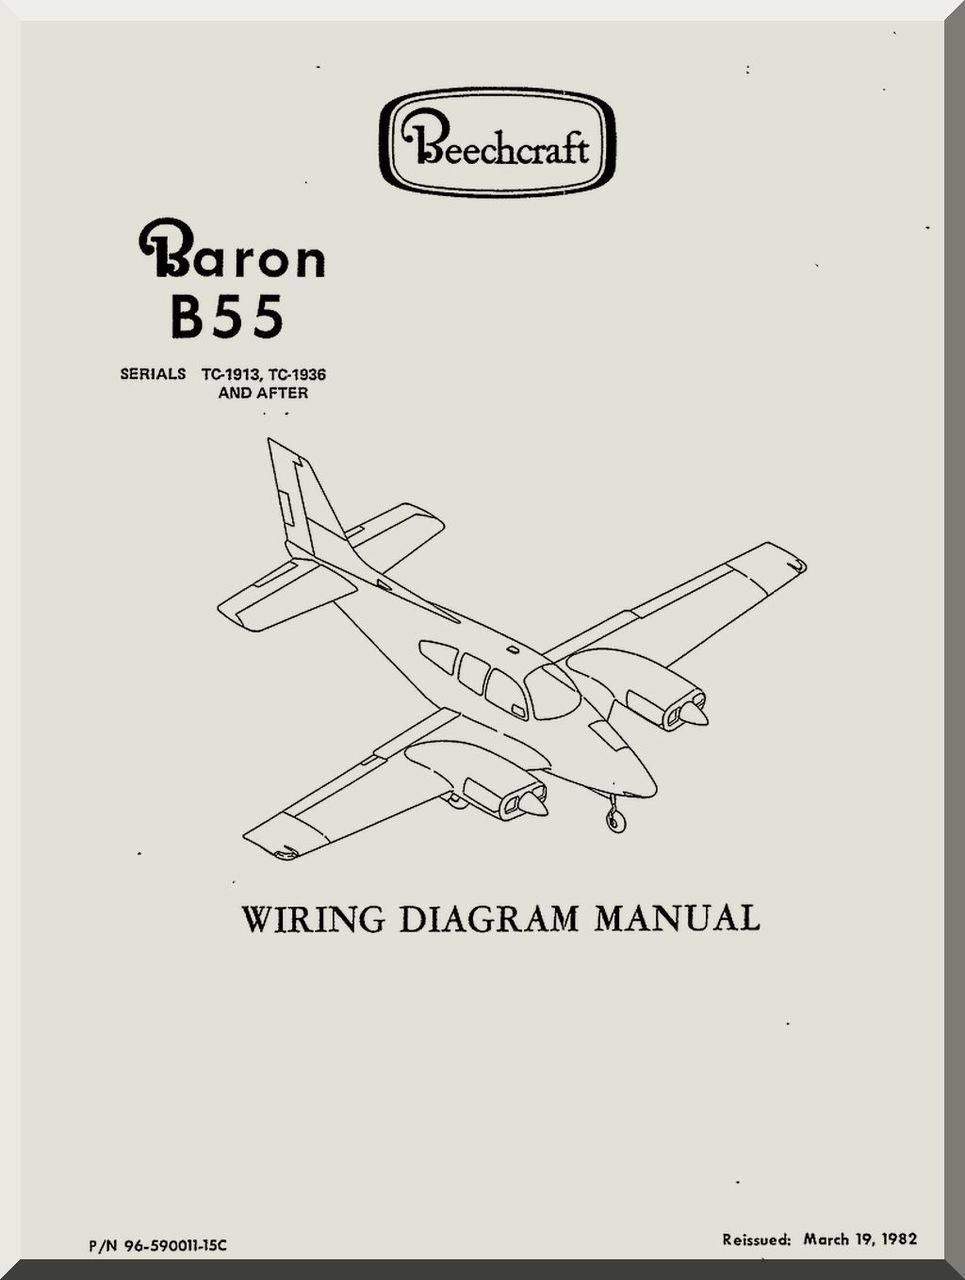 Aircraft Wiring Diagram Manual Not Lossing Aerospace Beechcraft Baron B 55 Rh Reports Com Electrical